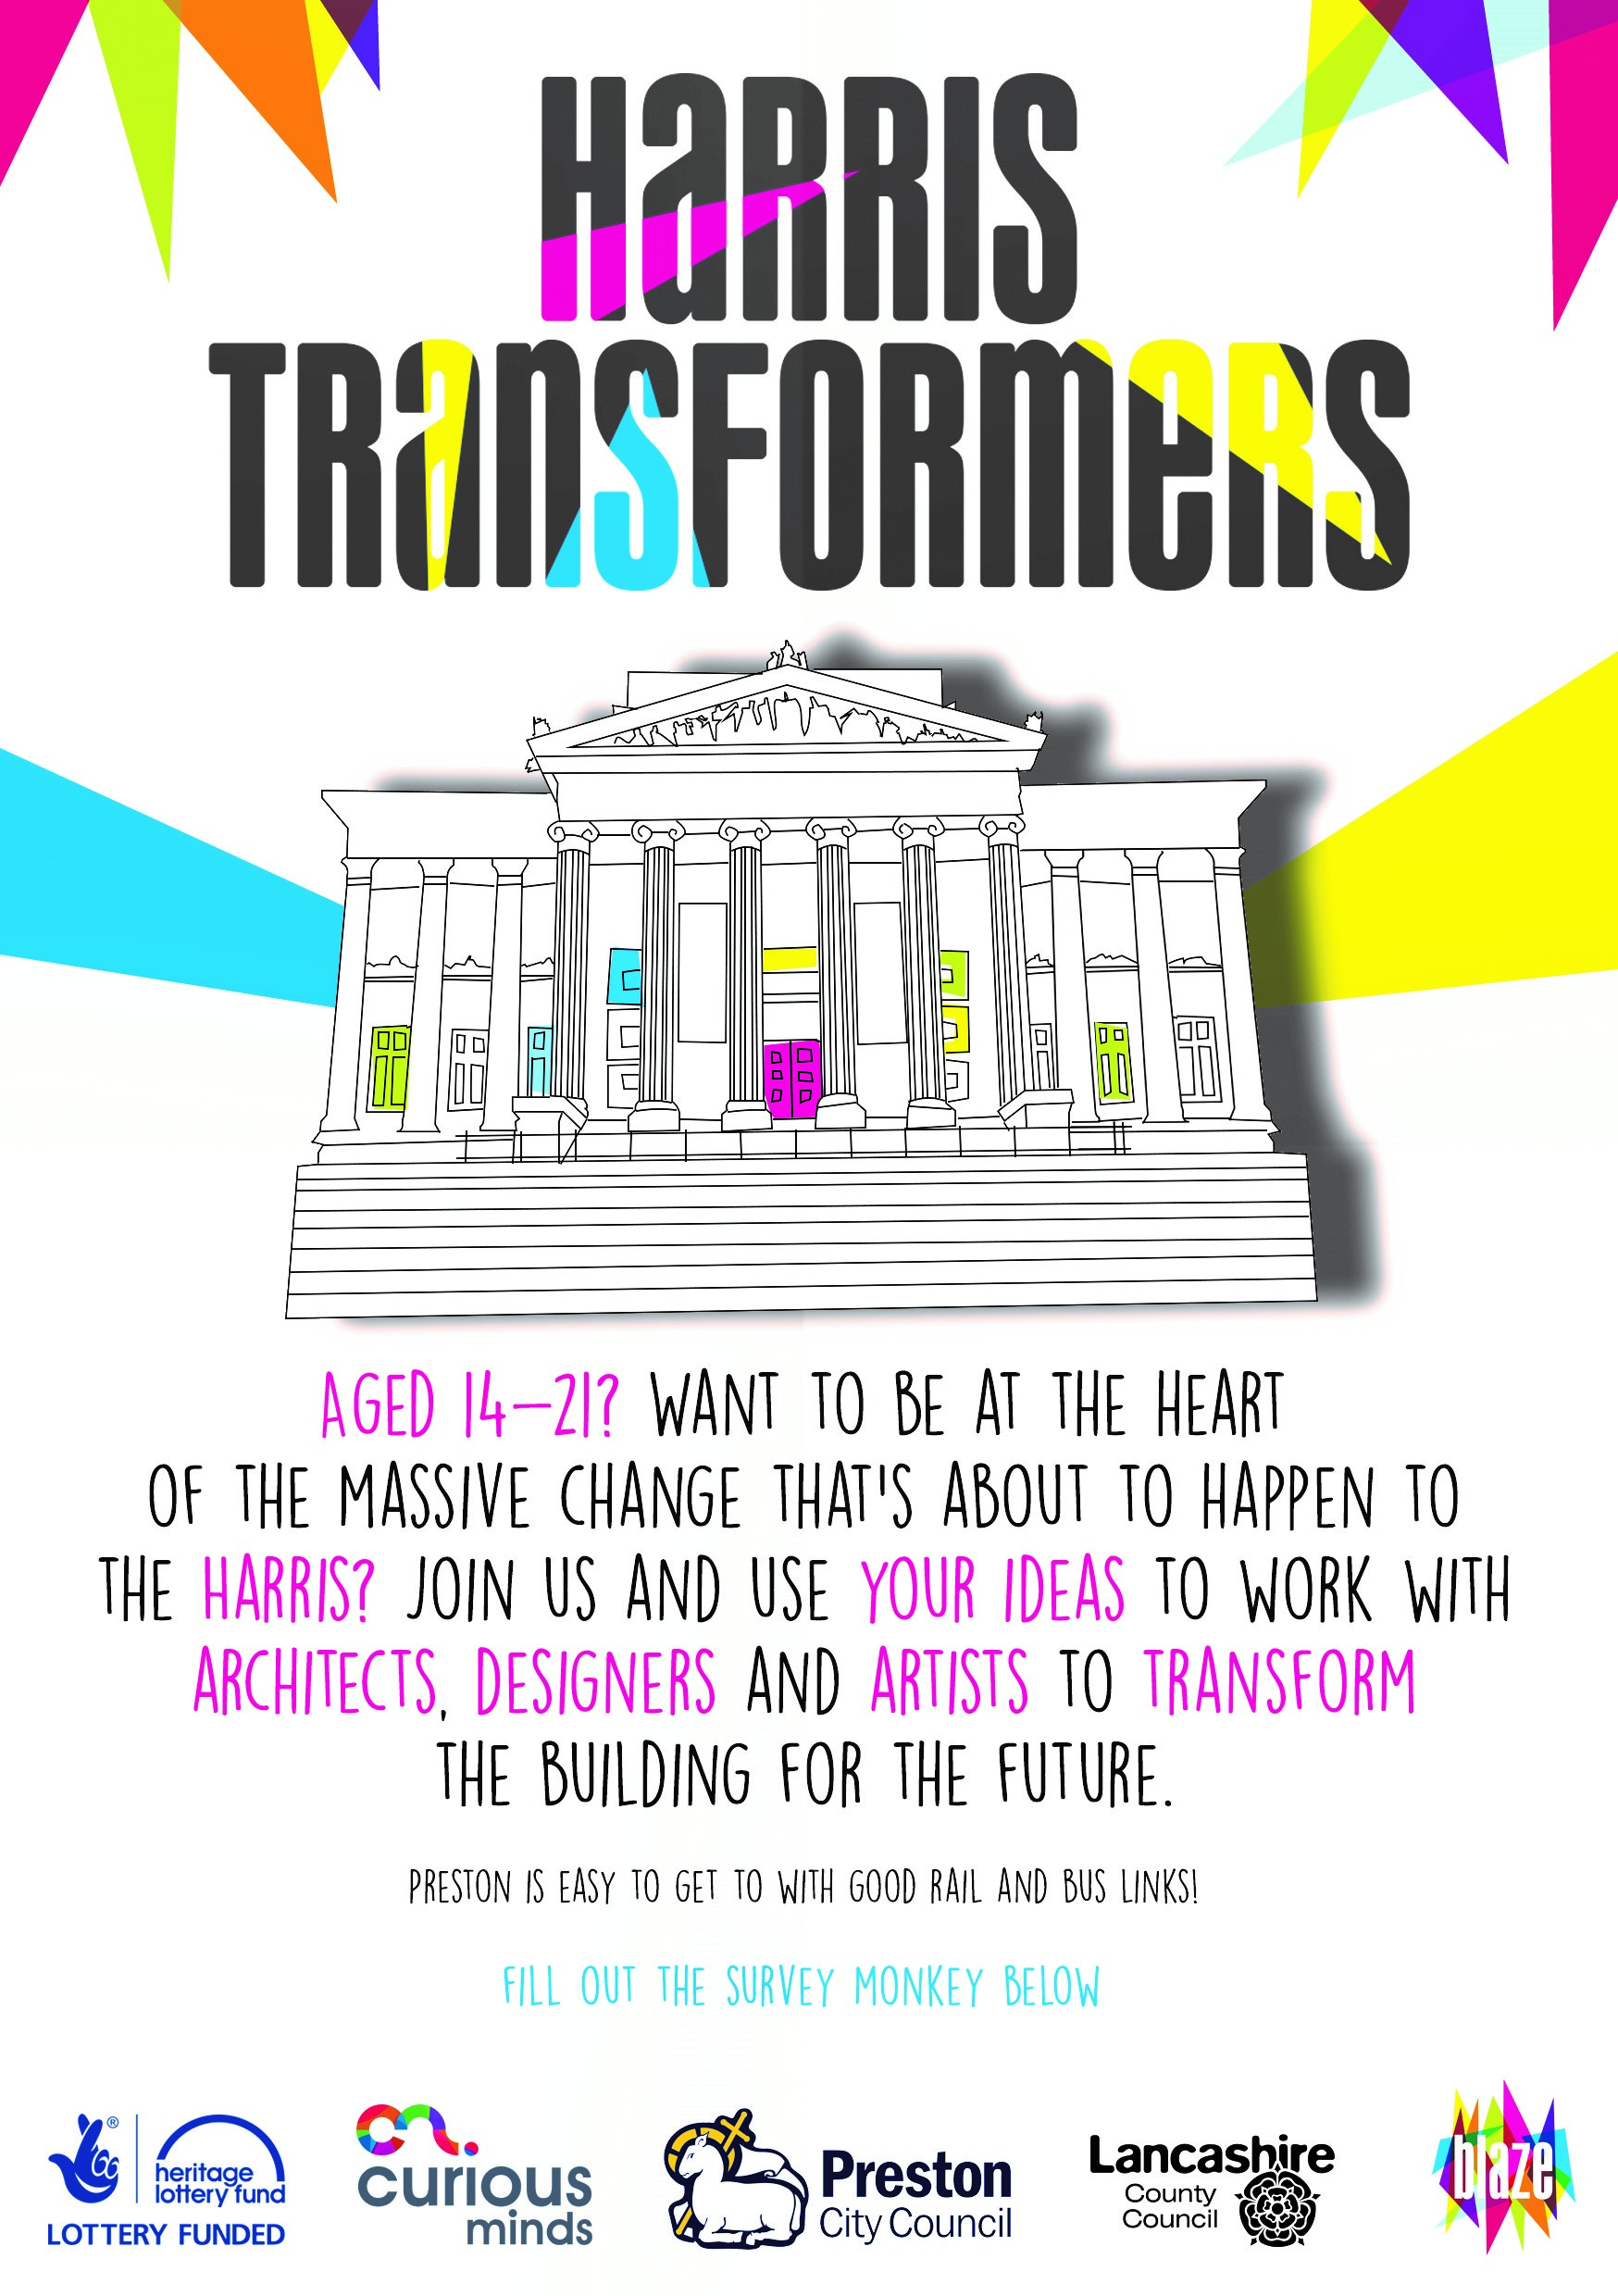 Harris Transformers poster which is looking for 14-21 year old creatives to take part and filling out a survey below.